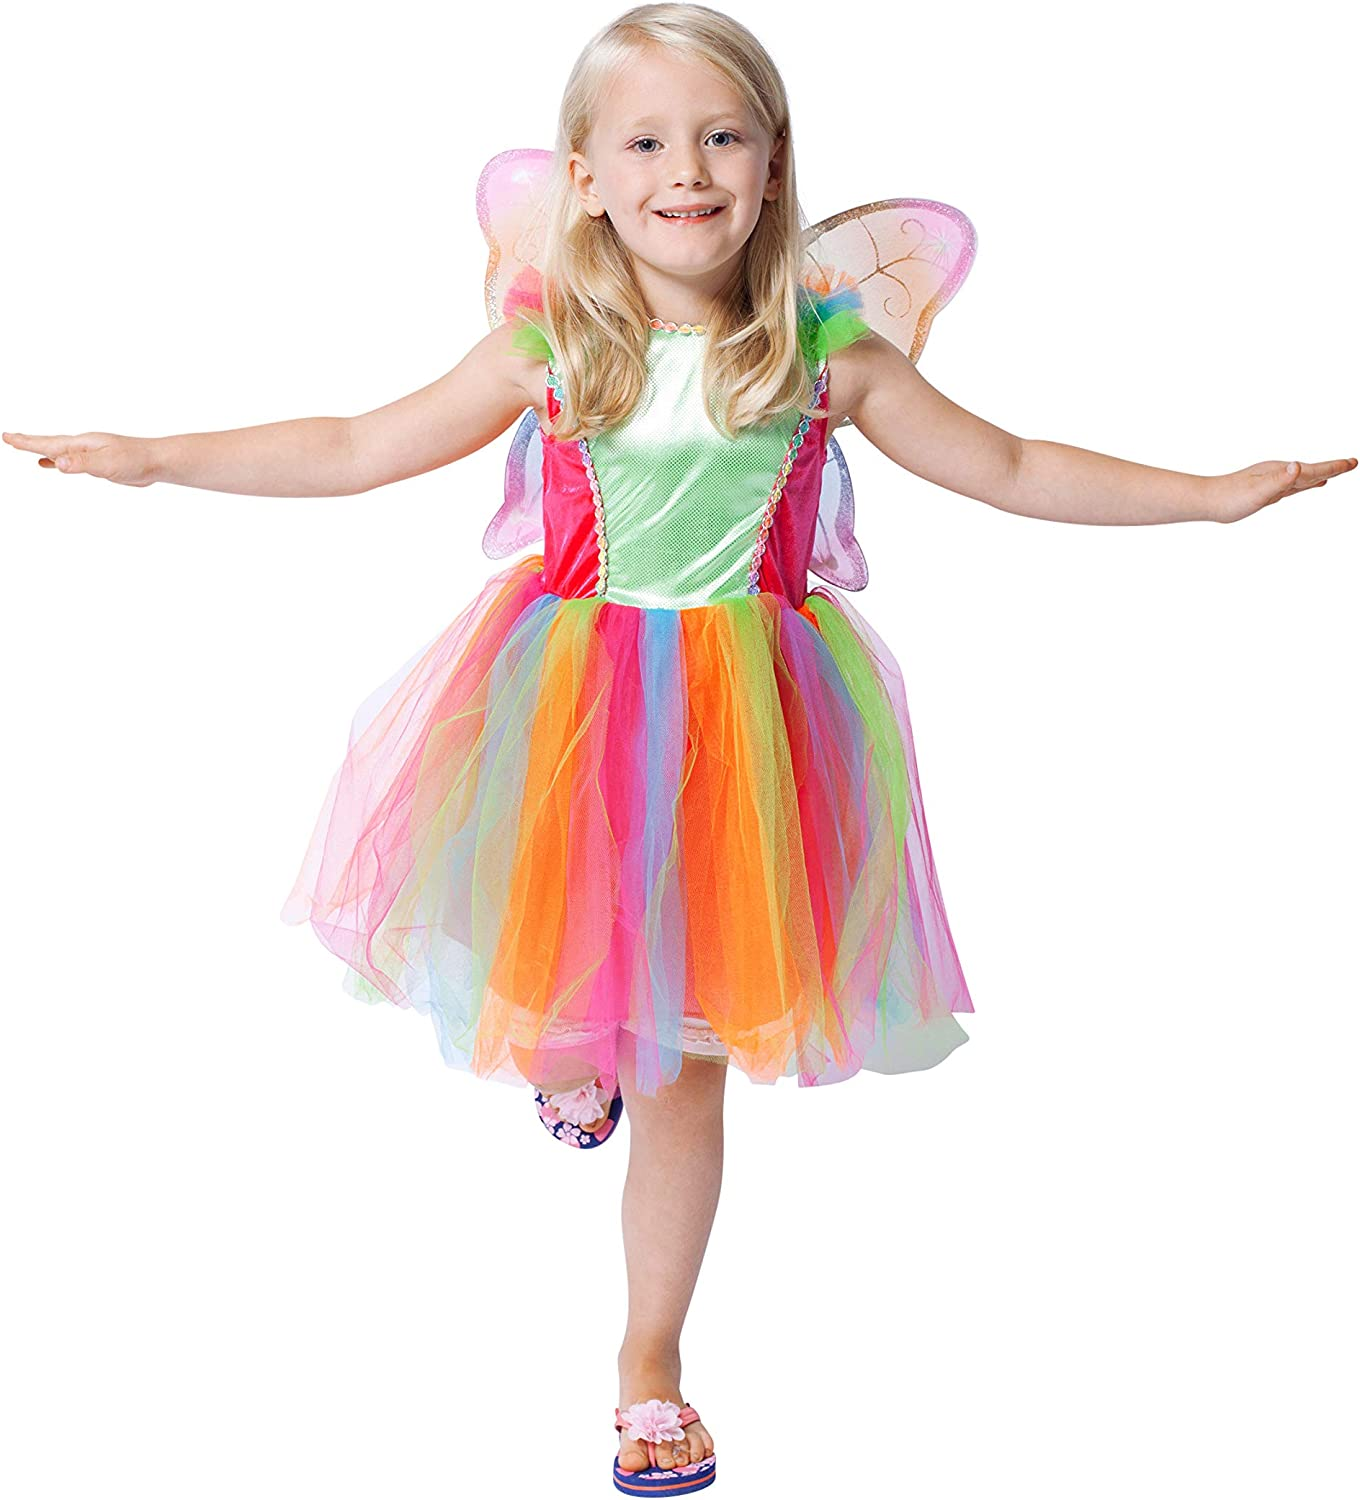 Generique Colourful Fairy Costume for Kids 910 years